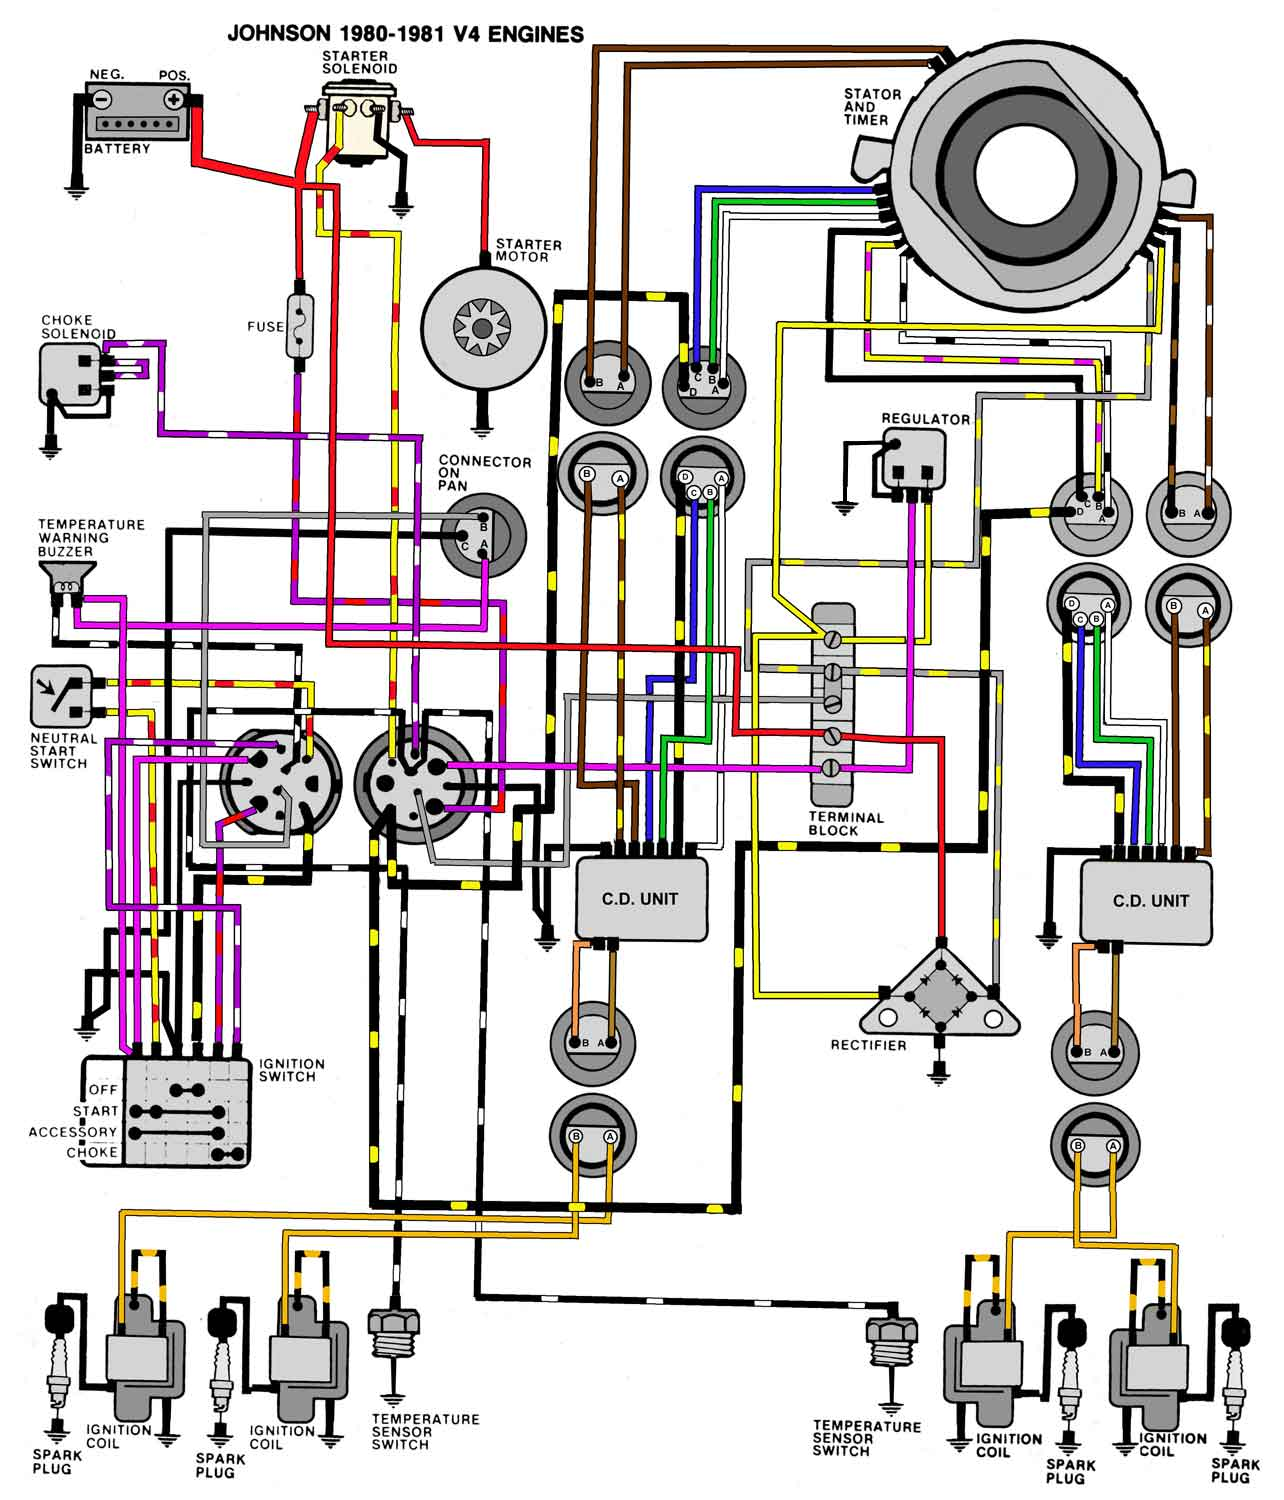 hight resolution of 1973 evinrude 85 hp wiring diagram wiring diagrams rh 90 treatchildtrauma de 90 evinrude wiring diagram